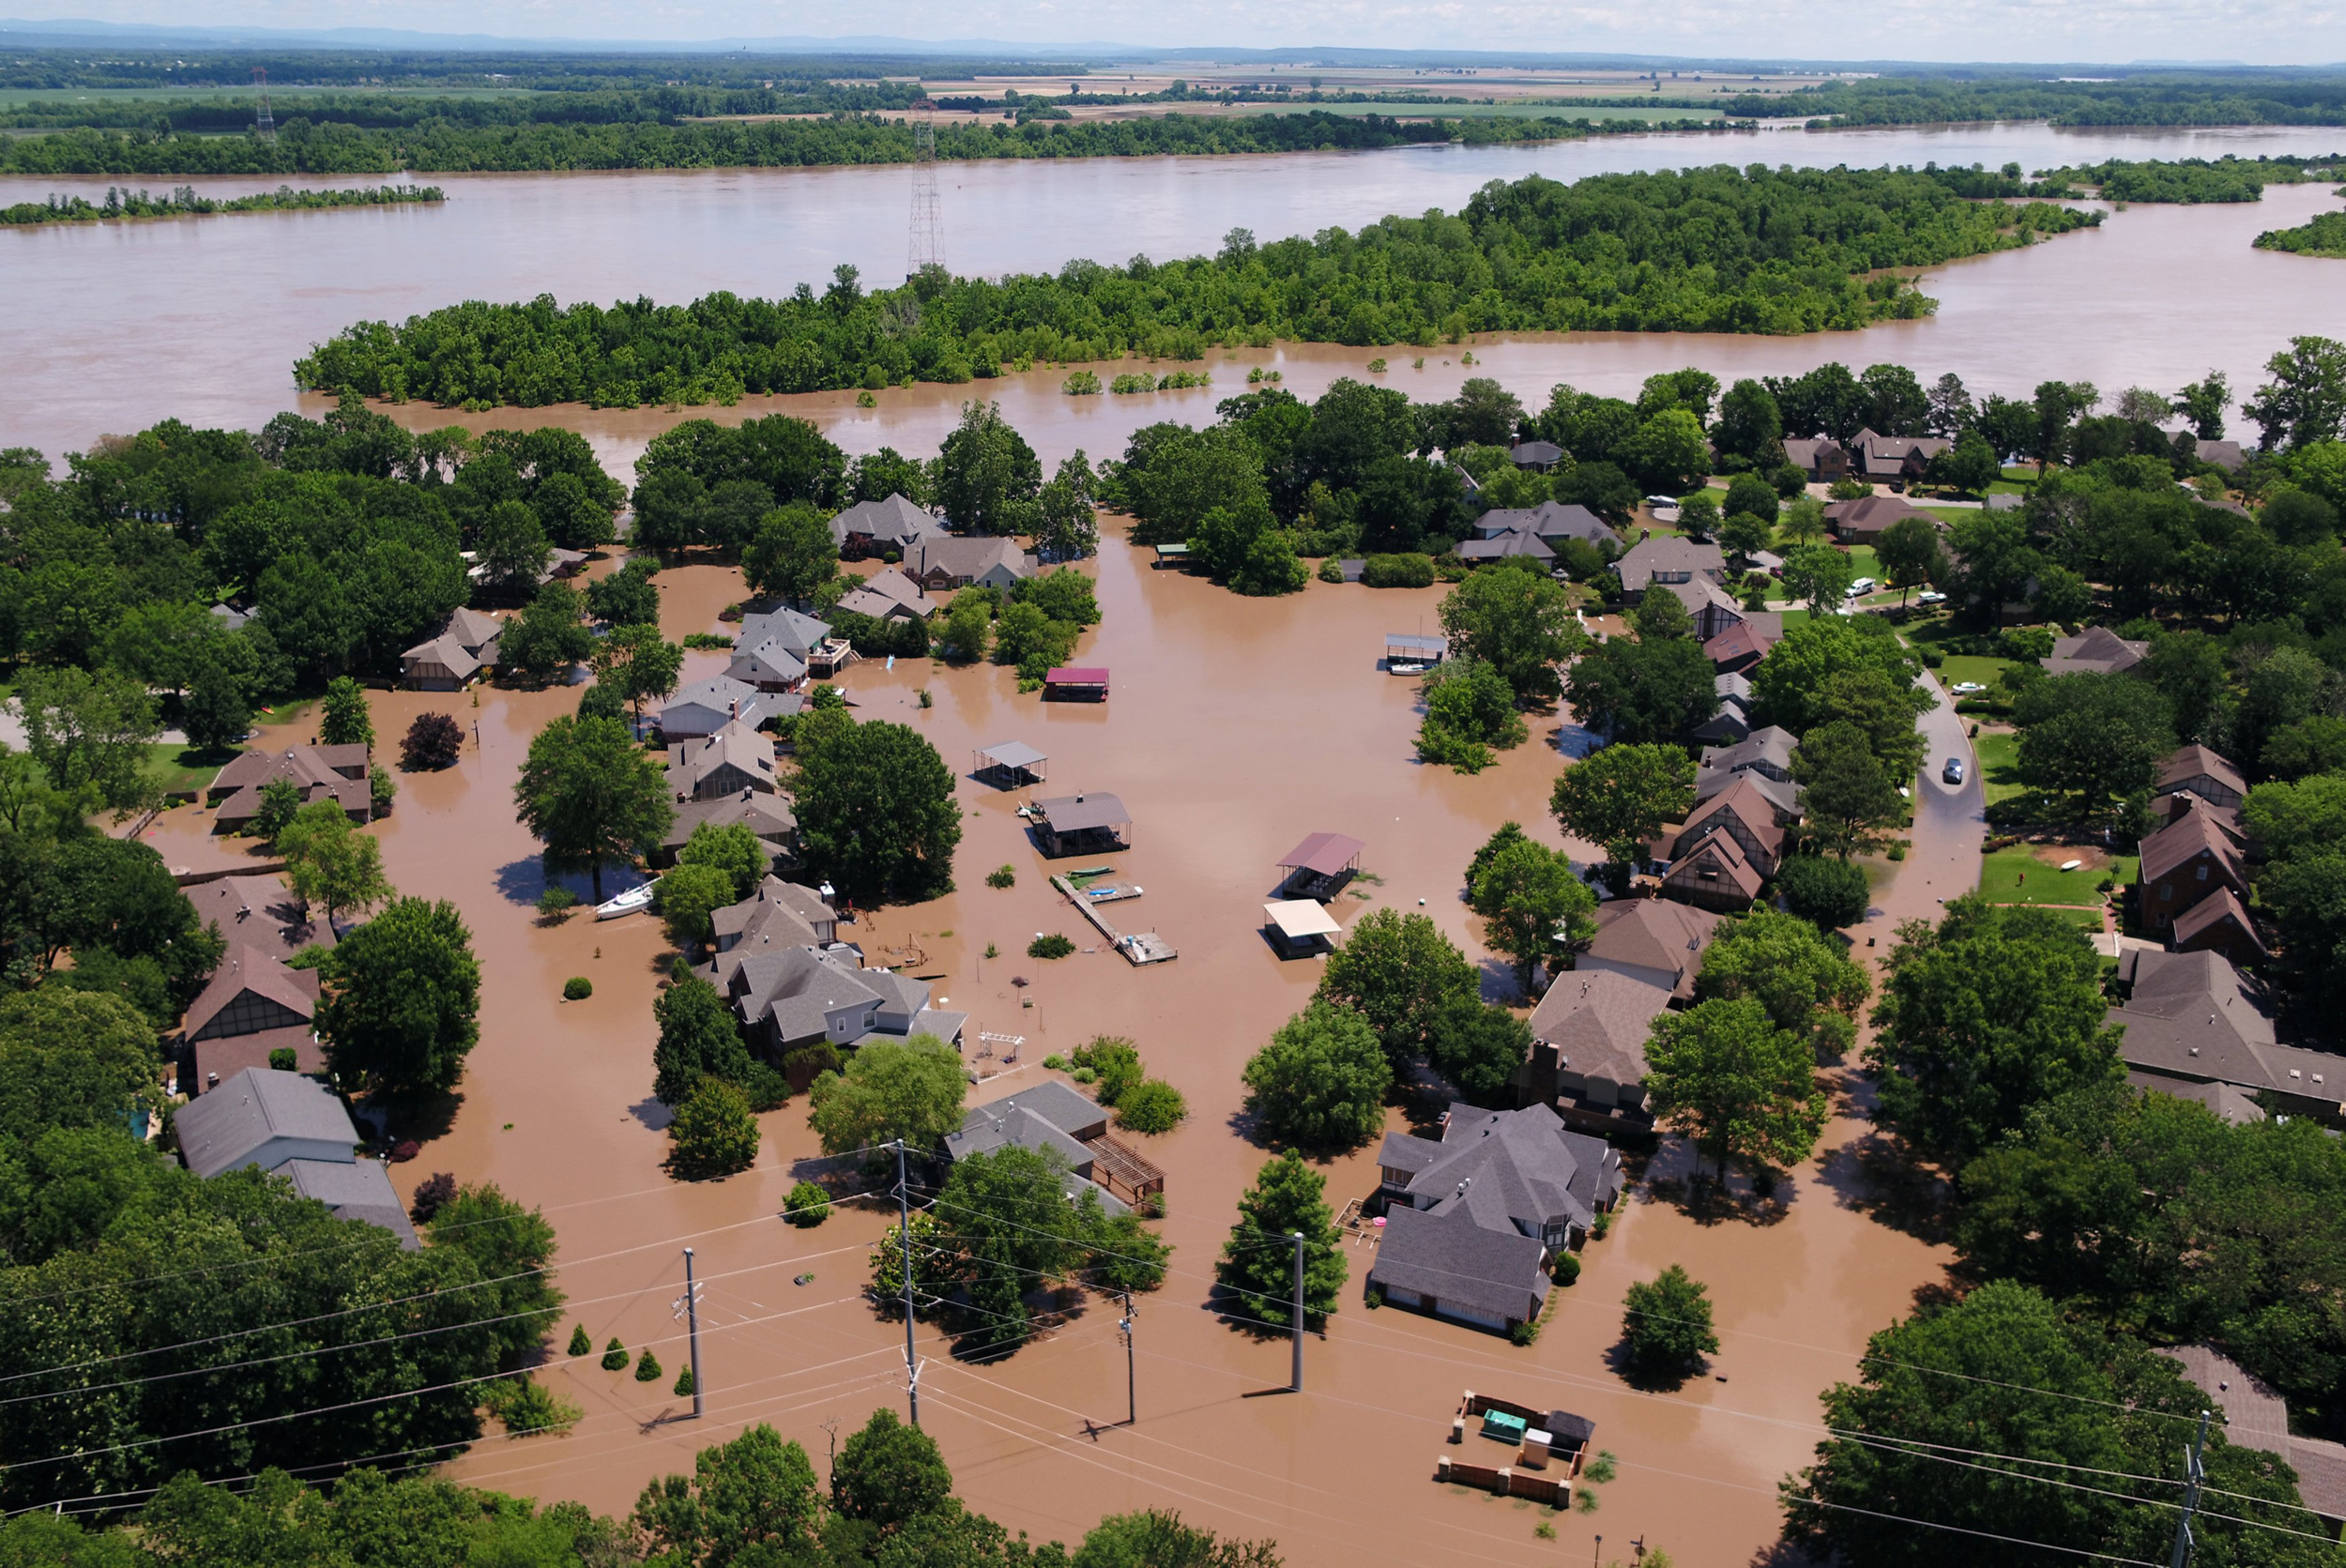 Levee breach in Arkansas prompts evacuation